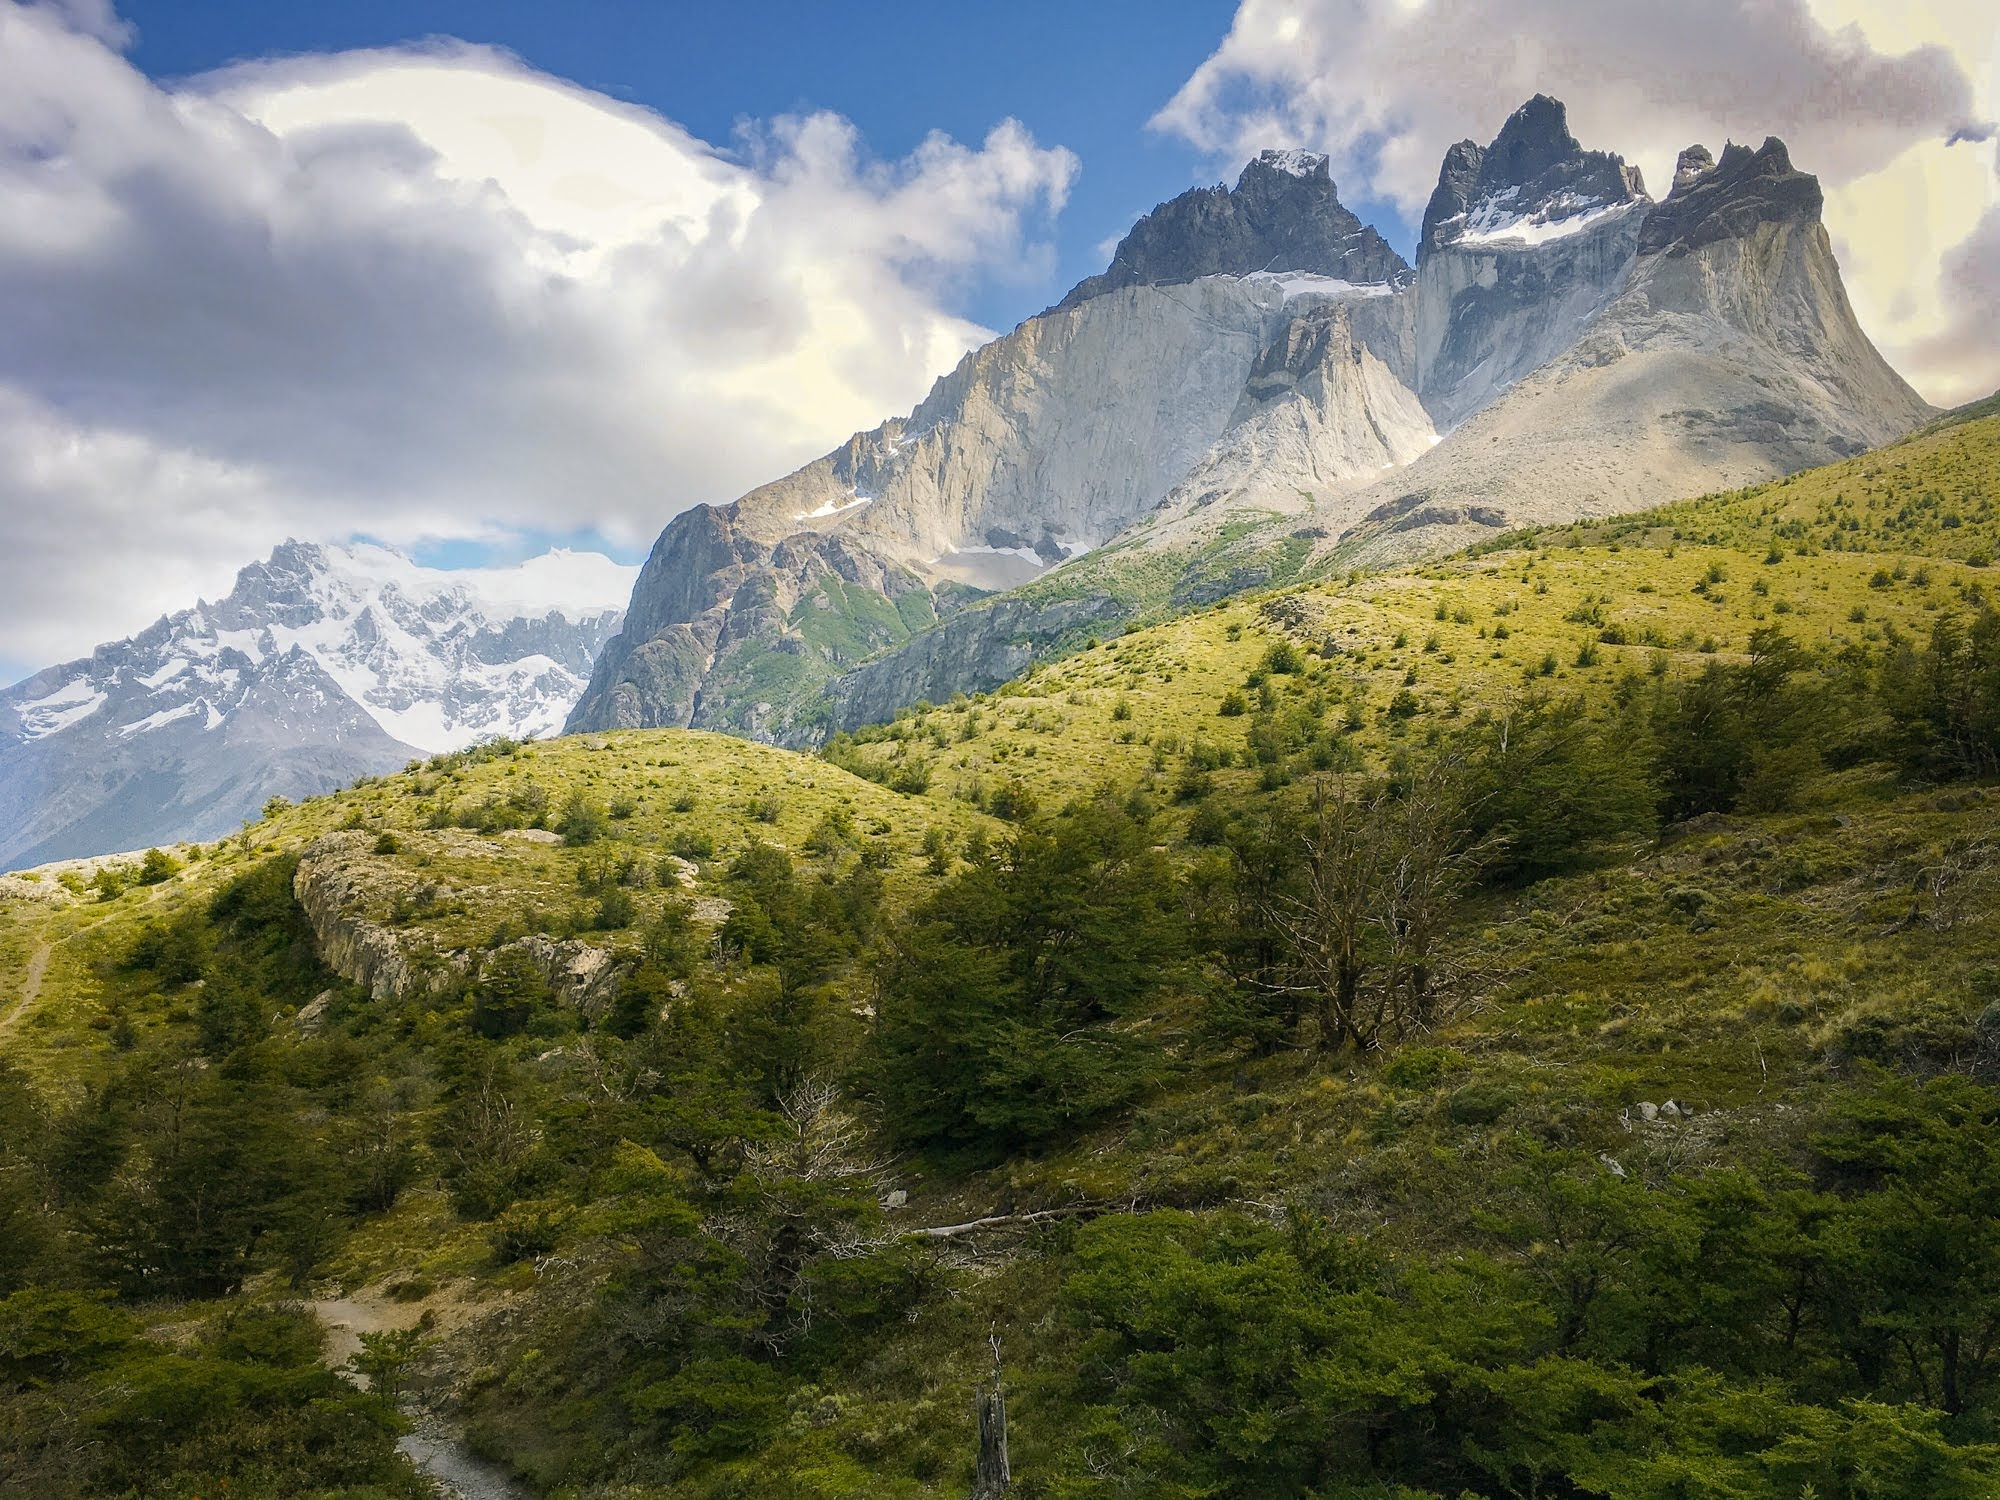 Los Cuernos - or The Horns, one of W Trek's most recognizable landmarks.